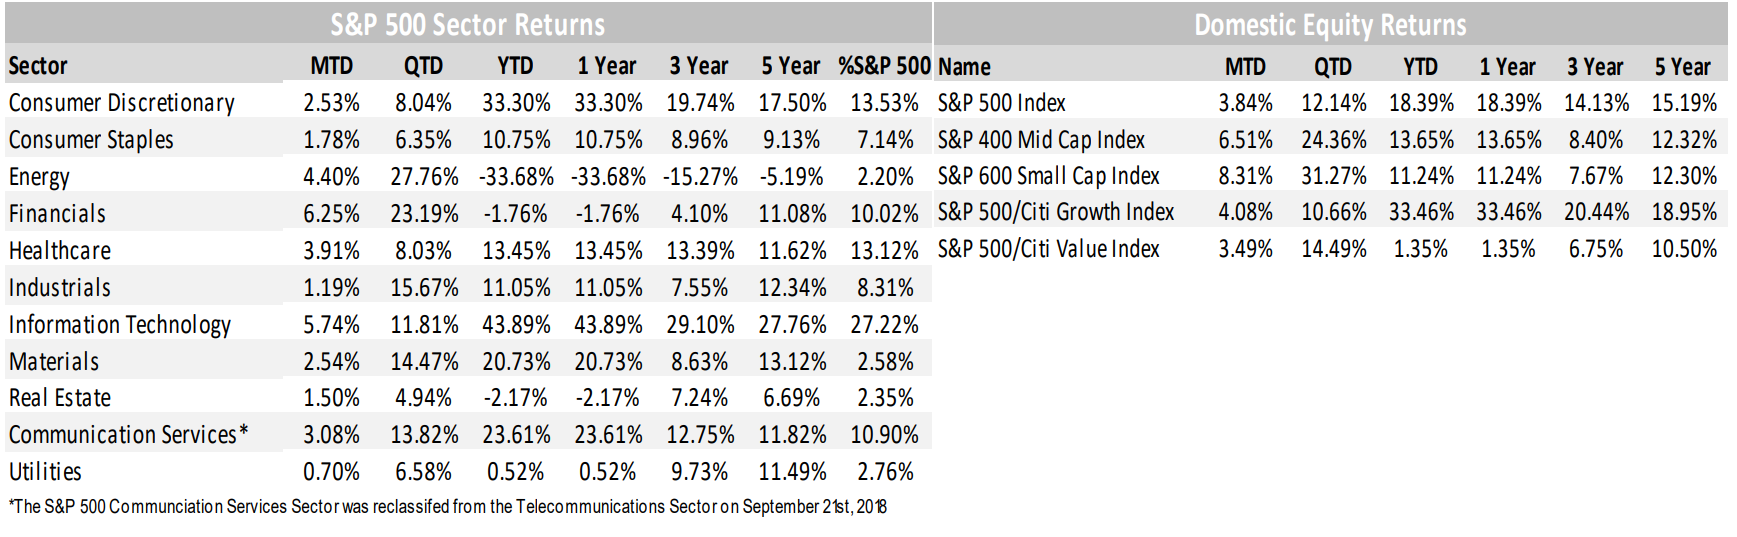 S&P 500 and Domestic Equity Returns